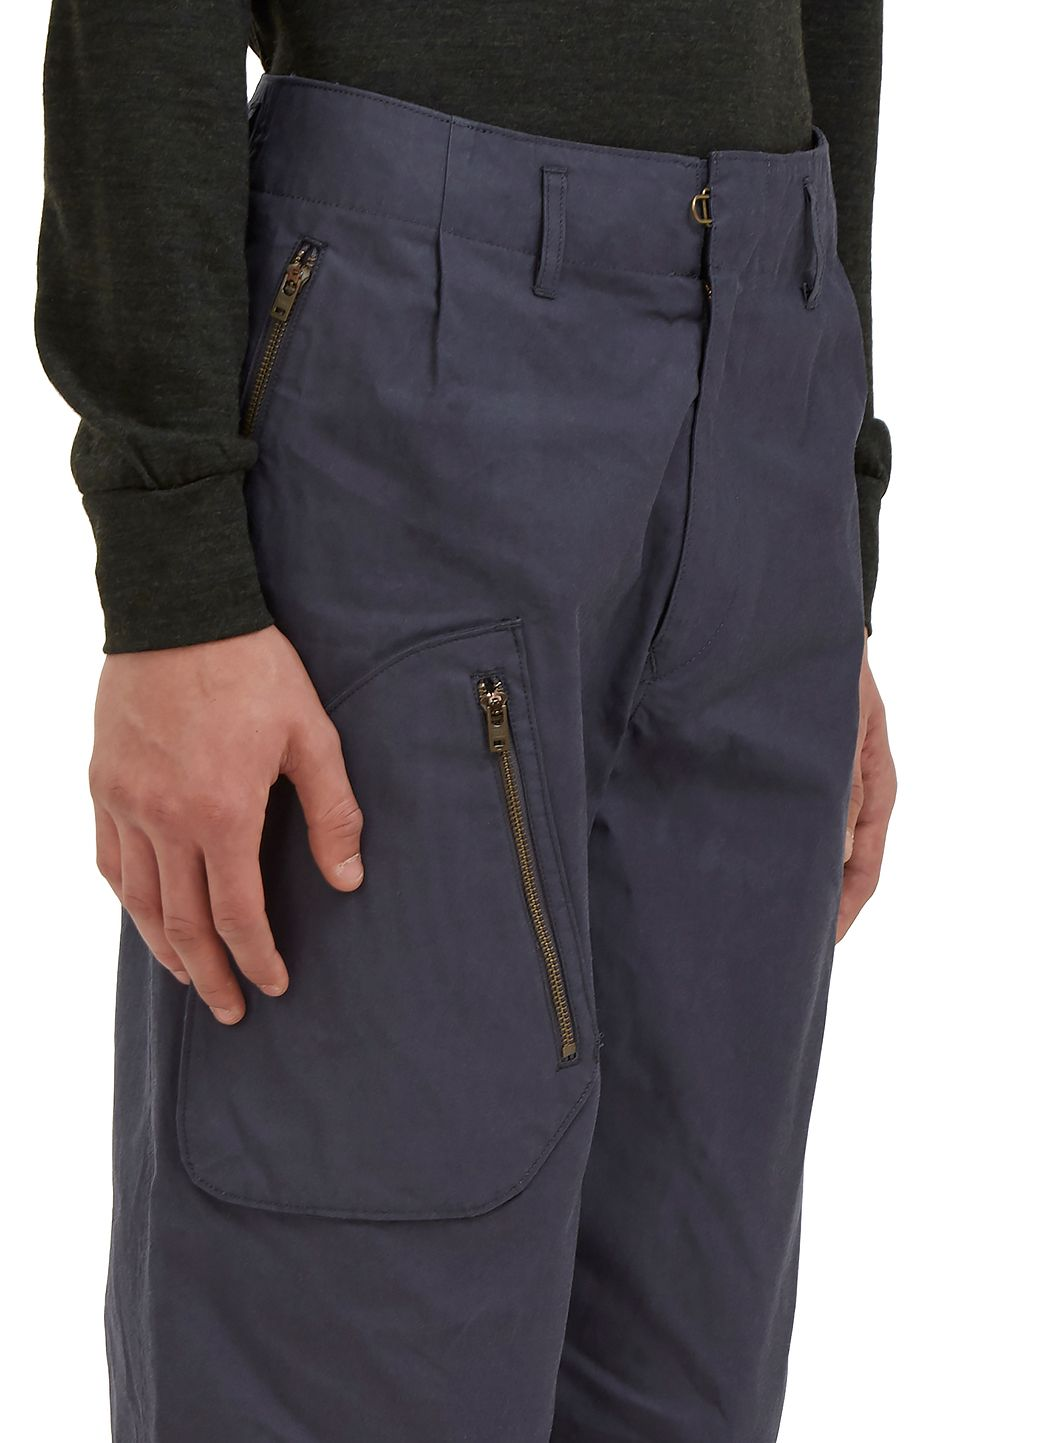 fashionable patterns authentic hot-selling authentic Men's Pants - Clothing   Shop Now at LN-CC - Oversized Cargo ...